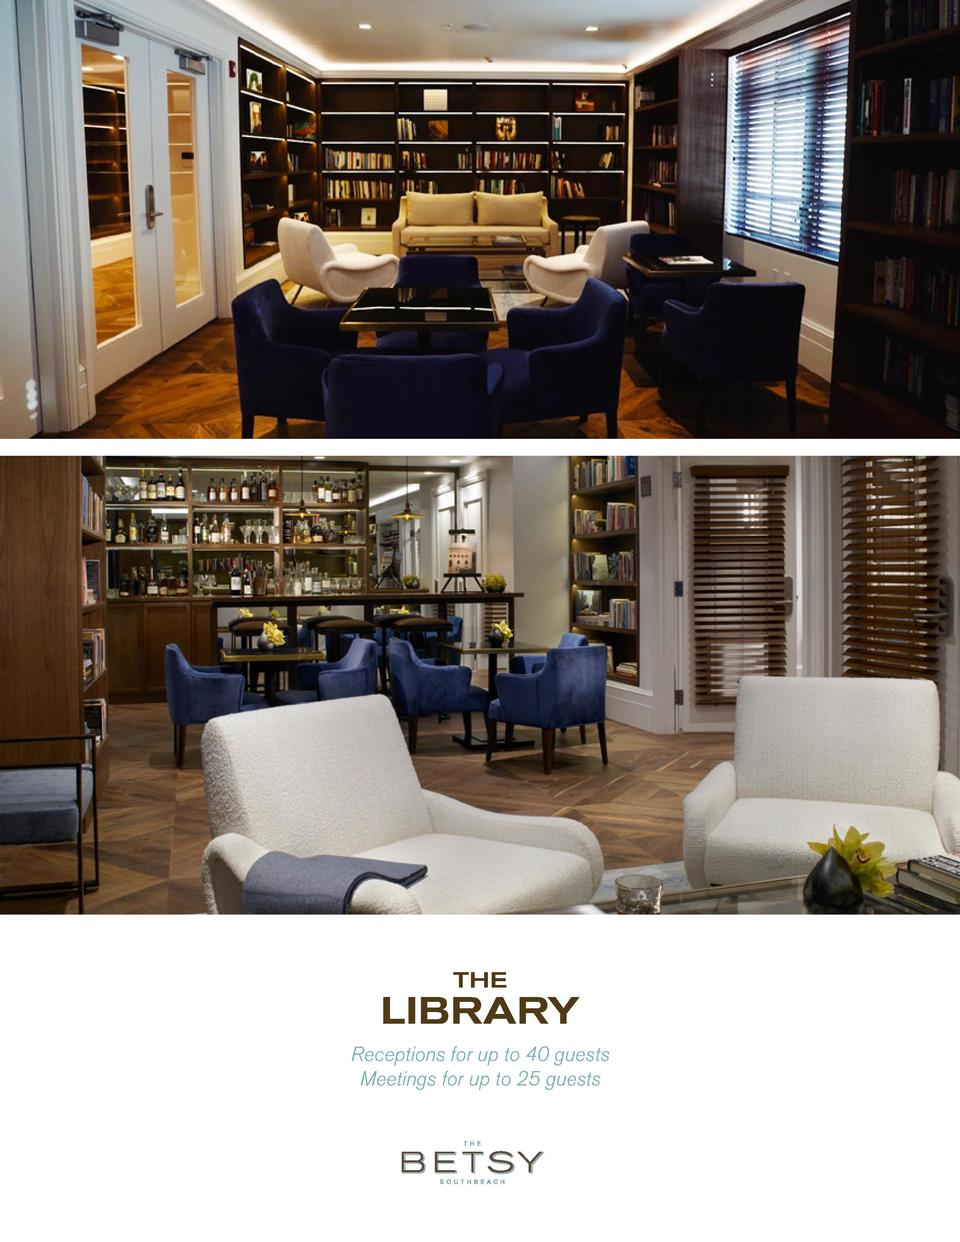 THE  LIBRARY Receptions for up to 40 guests Meetings for up to 25 guests